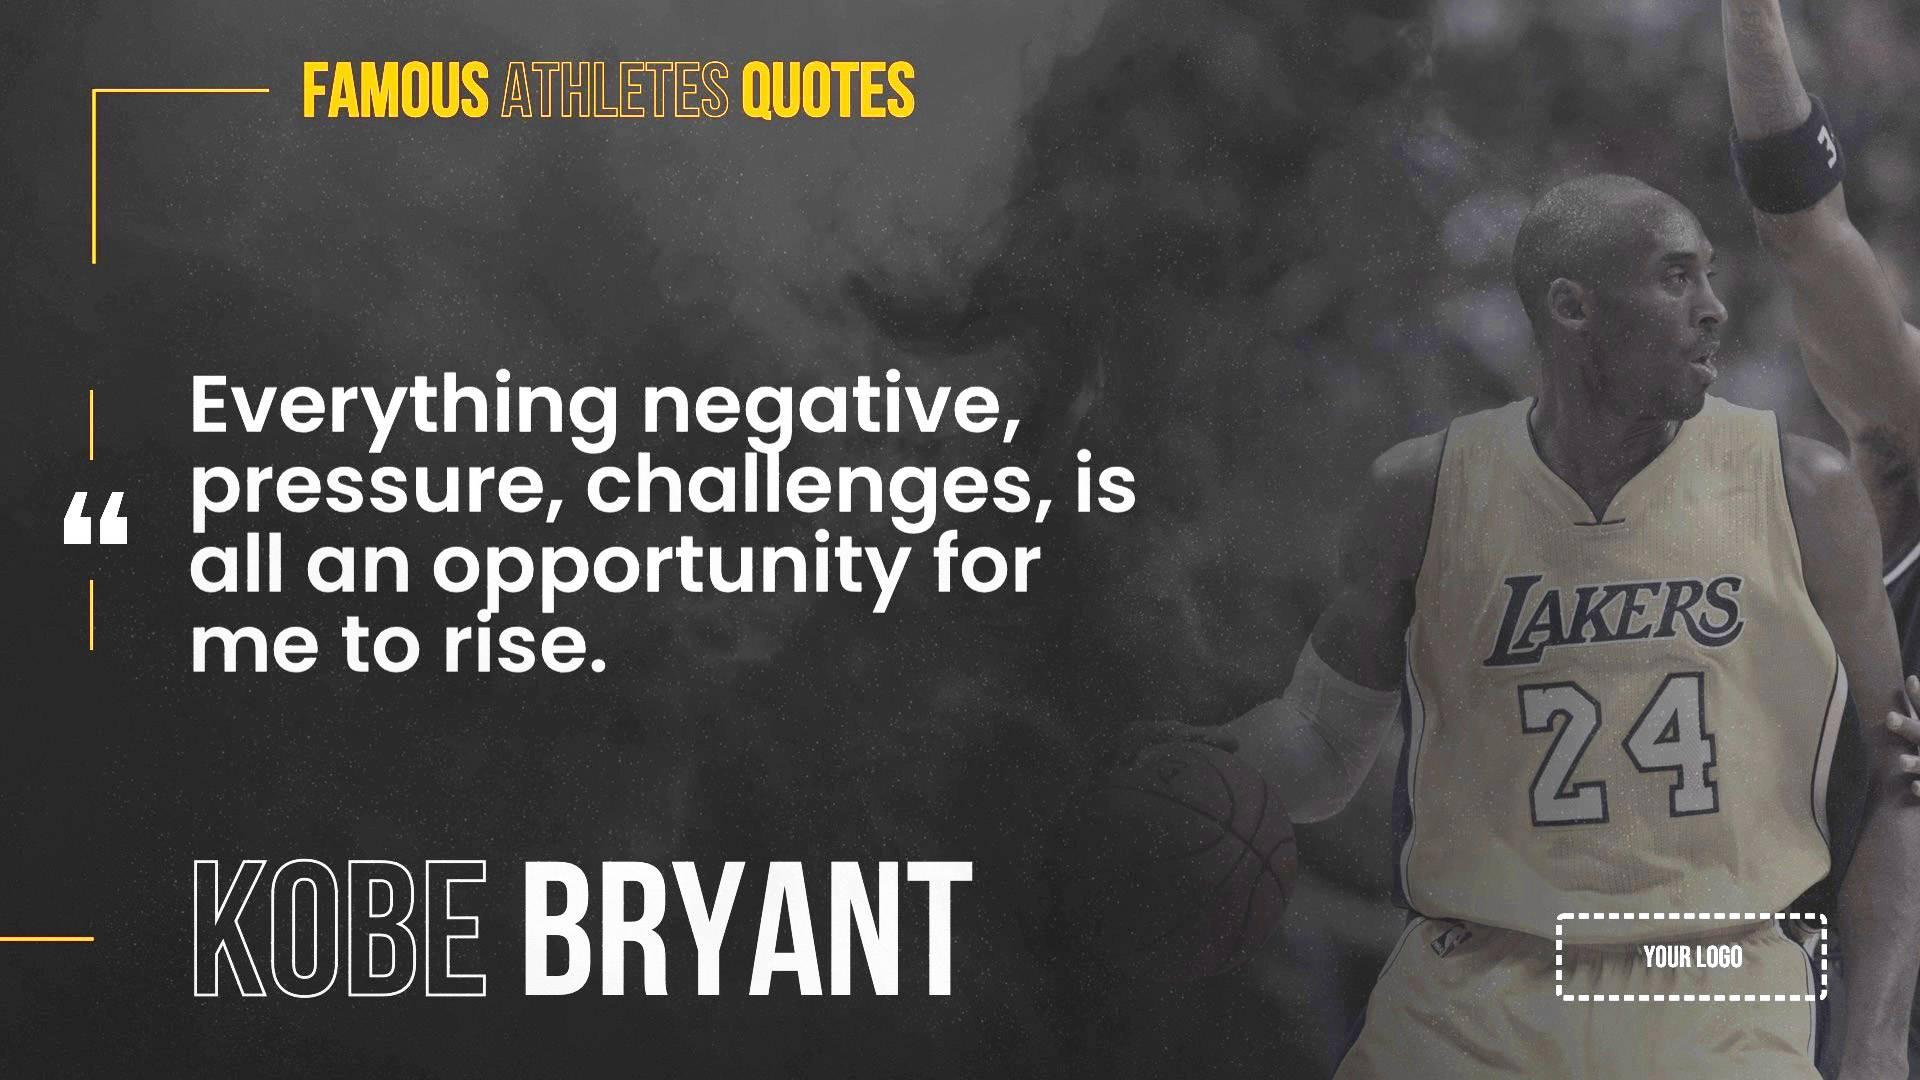 Famous Athletes Quotes Digital Signage Template